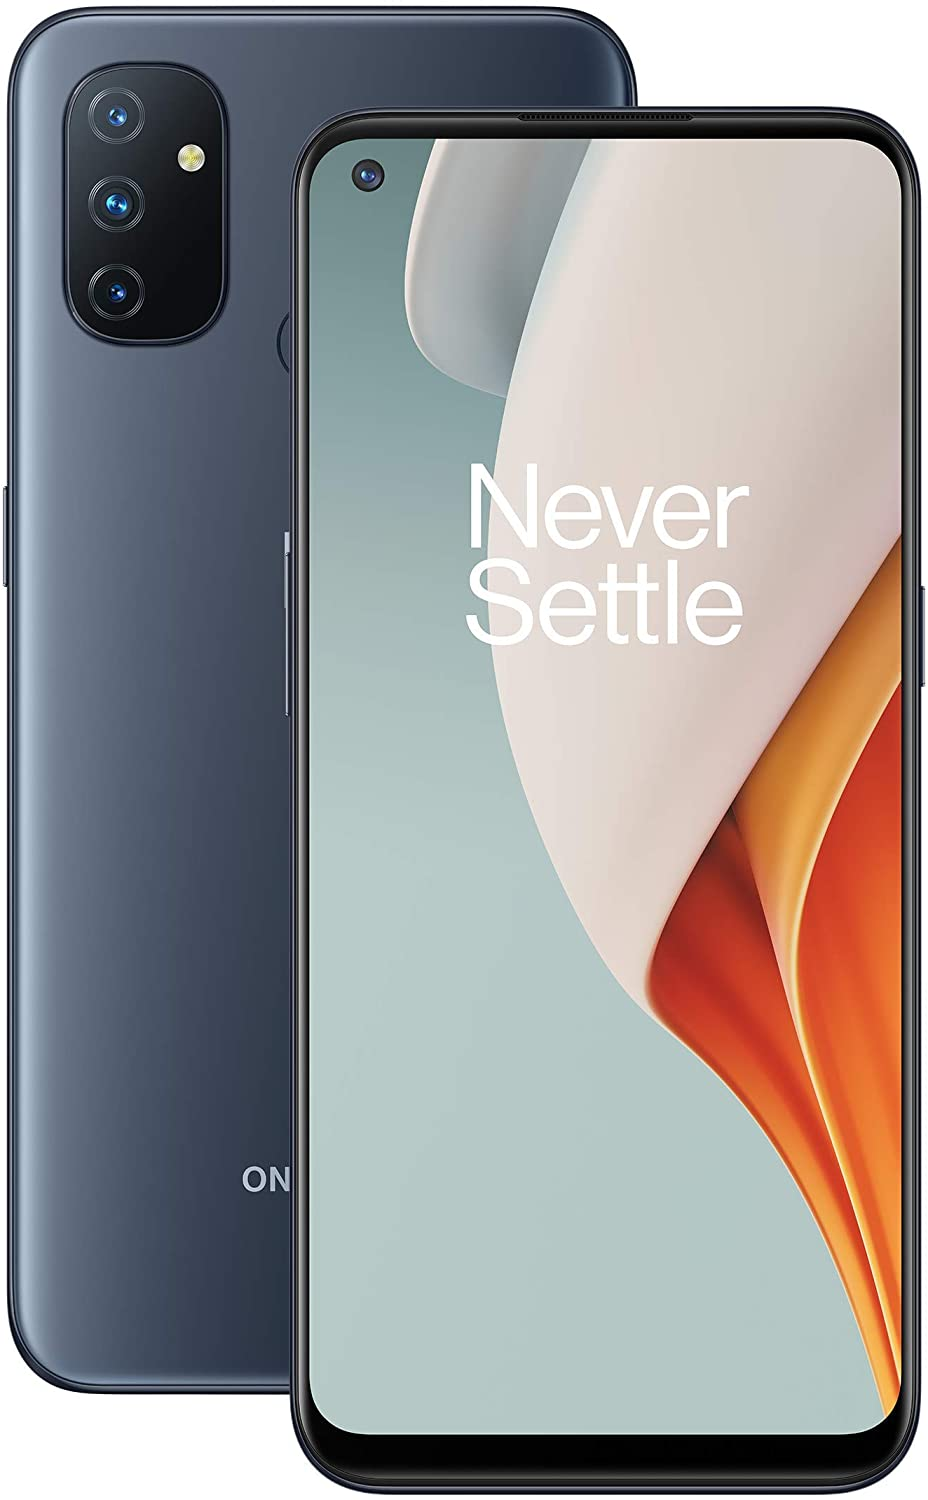 OnePlus N10 5G 6GB RAM and 128GB Storage UK SIM-Free Smartphone with Quad Camera, Dual SIM and Warp Charge 30T - Midnight Ice